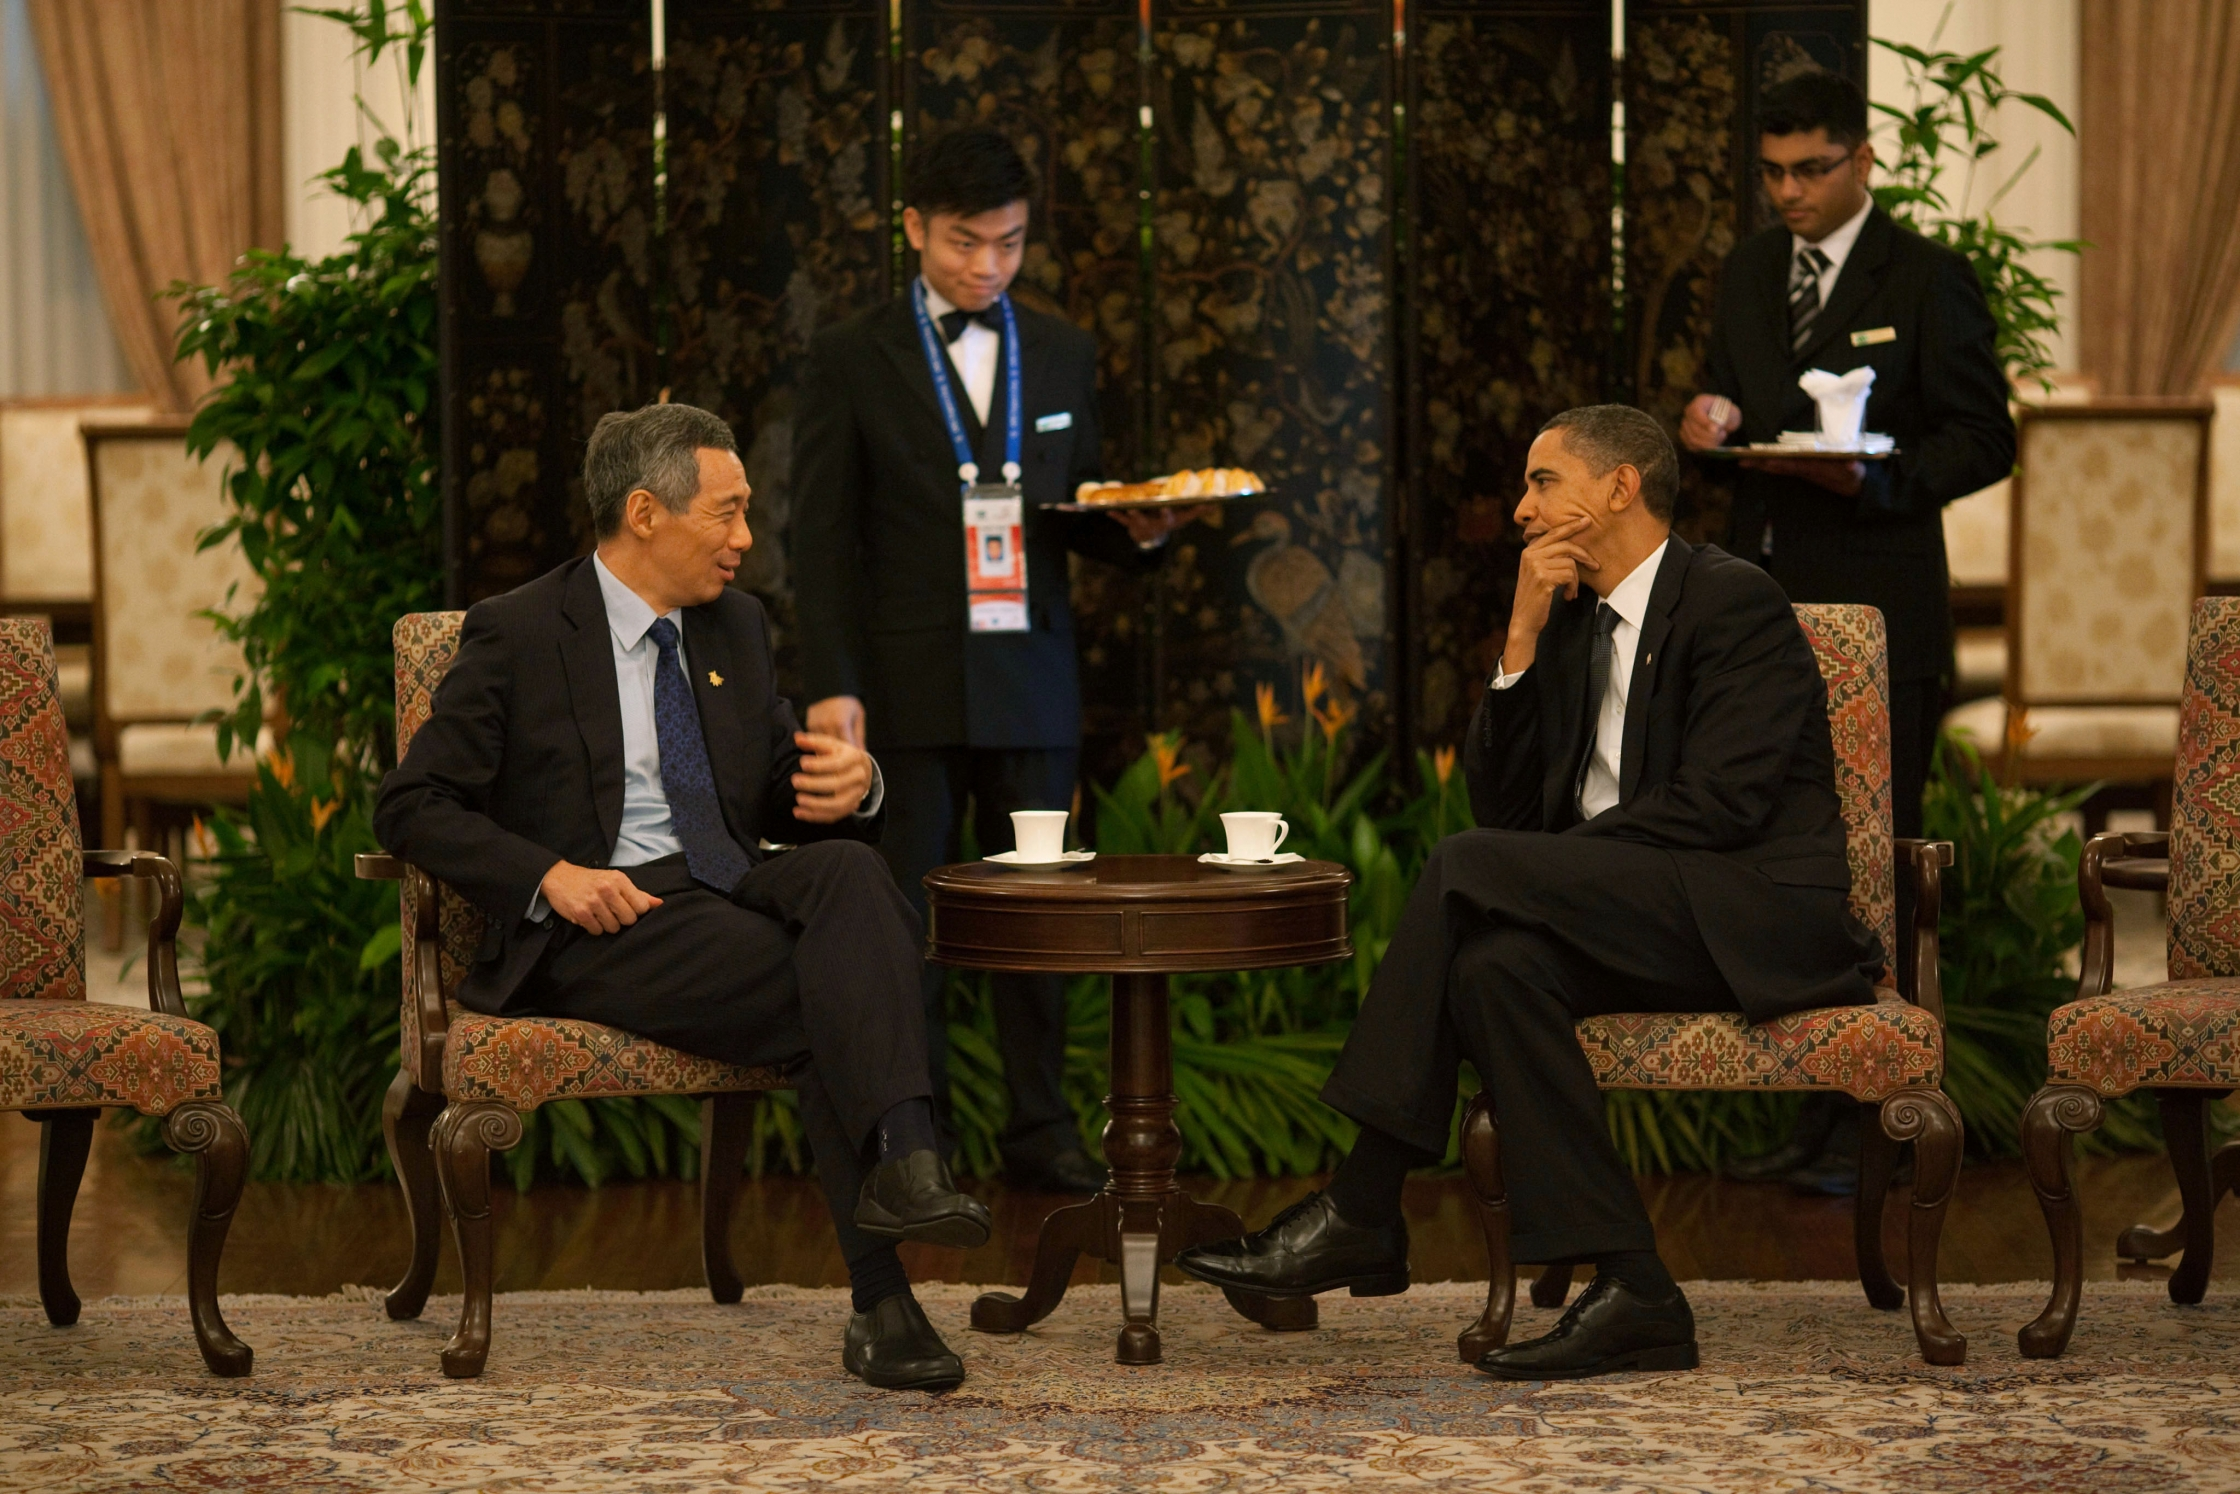 President Obama and Prime Minister Lee of Singapore in 2009